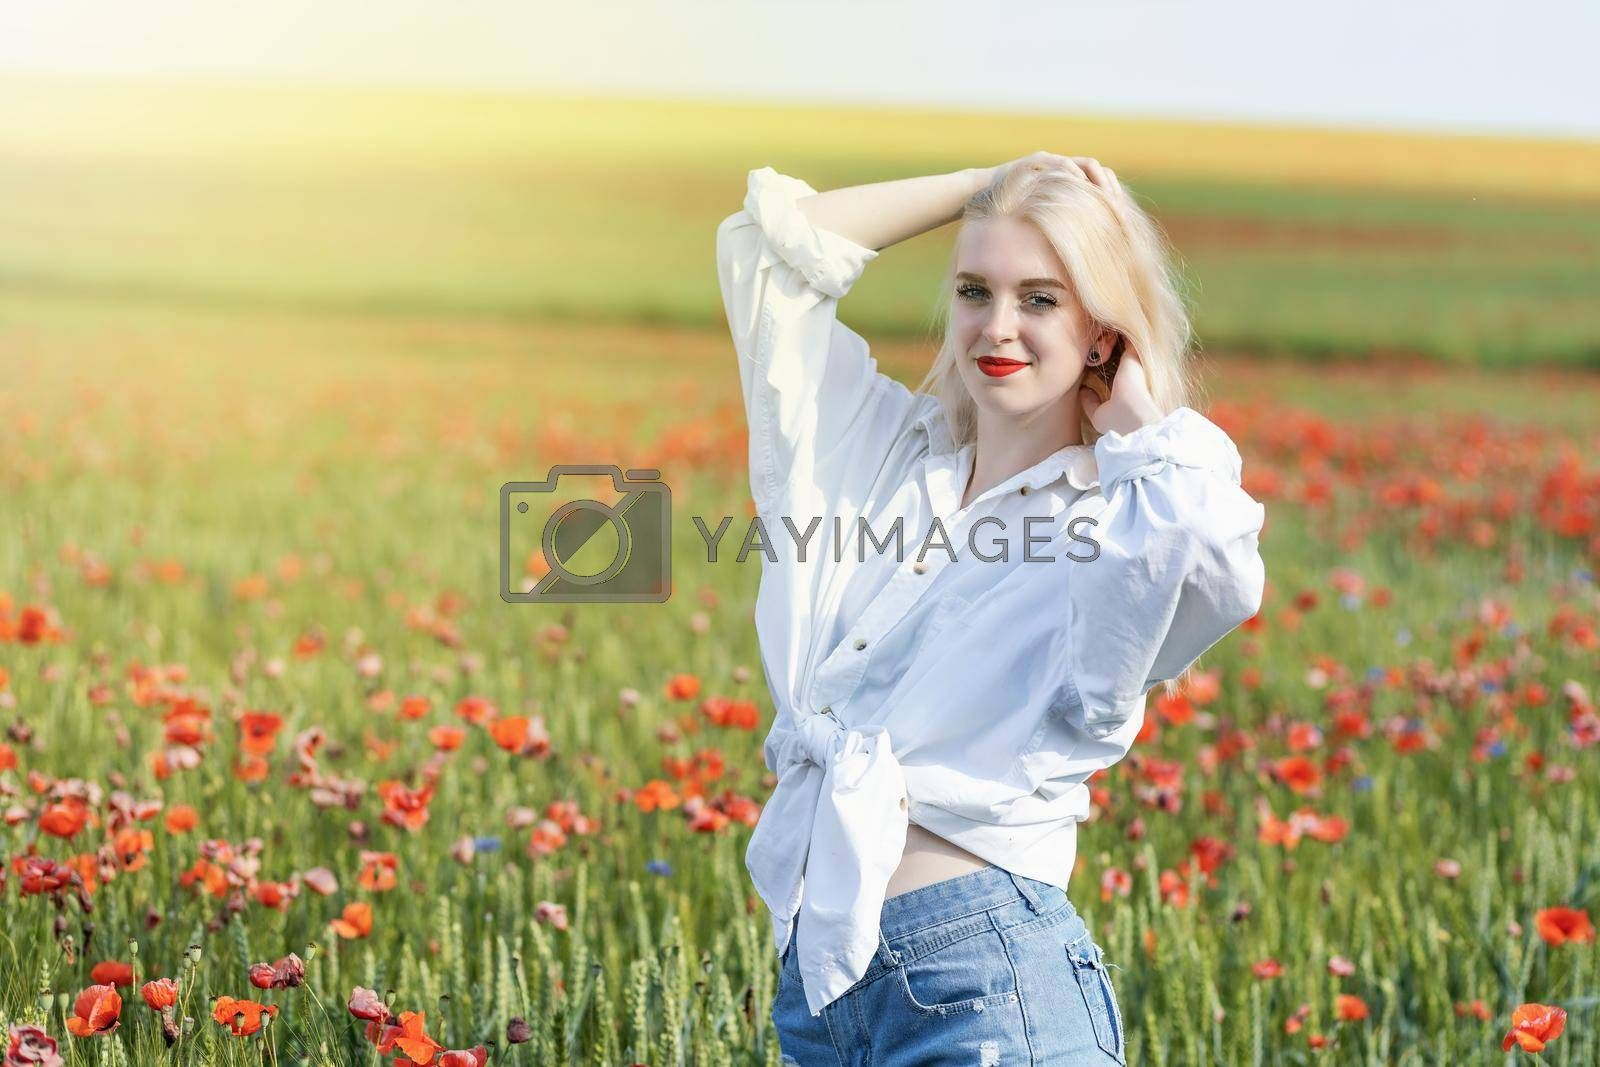 Royalty free image of Attractive young girl posing in a field with red poppies. by Frank11